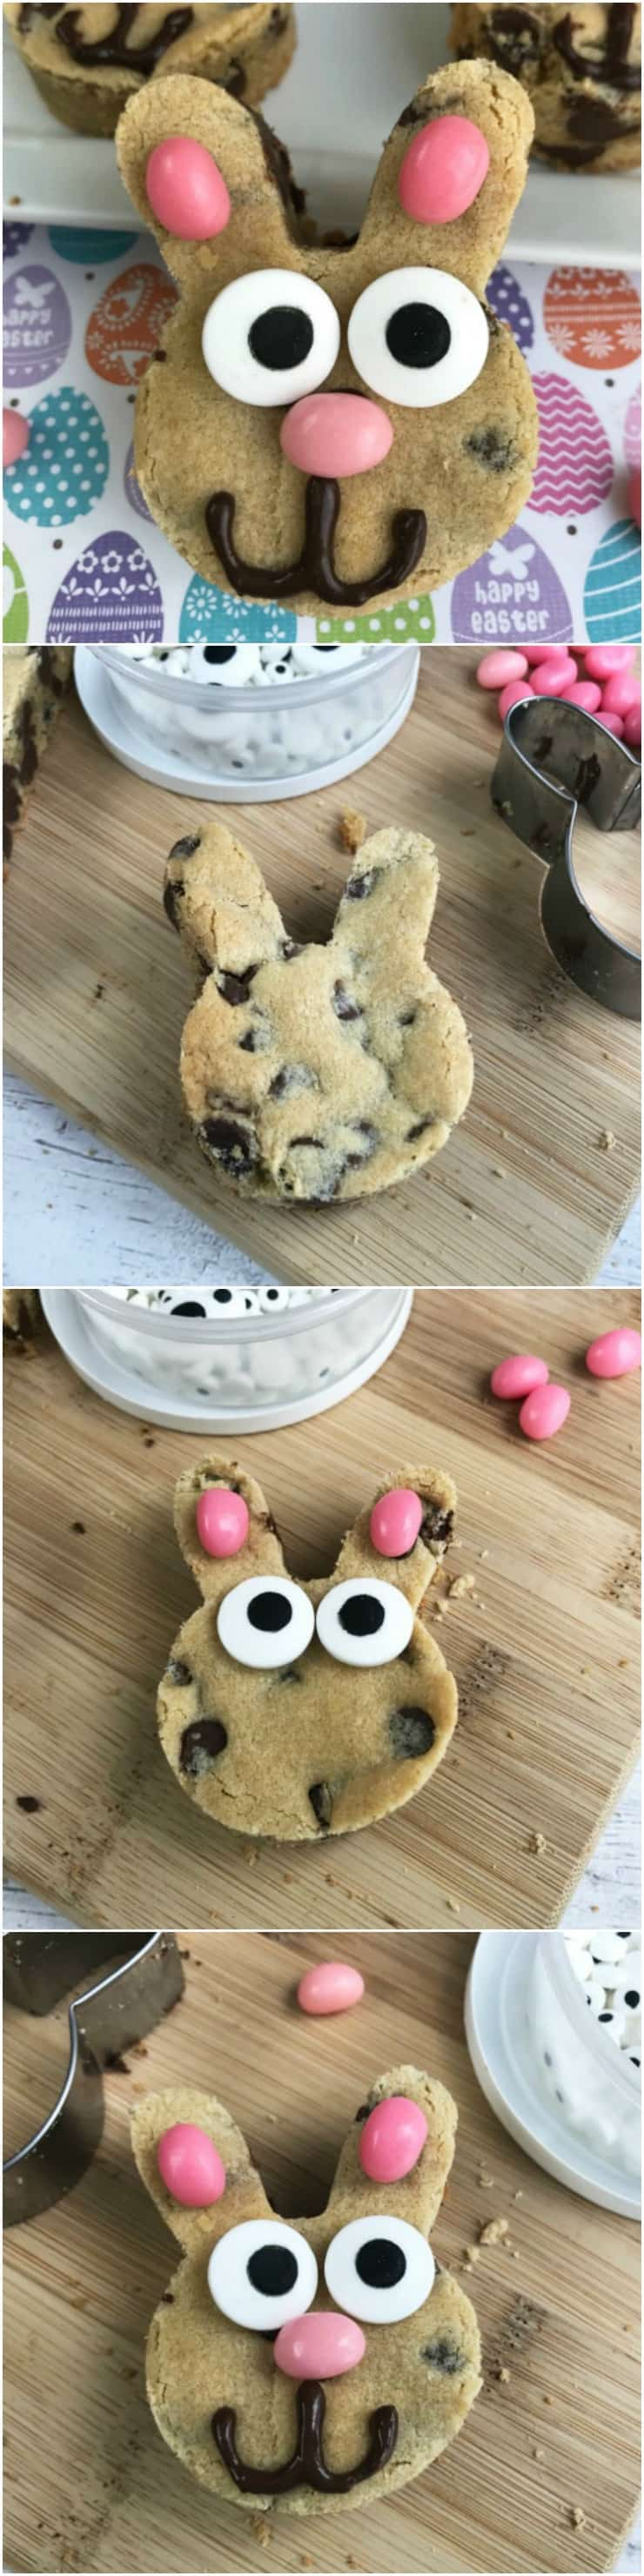 How to Make Chocolate Chip Easter Bunny Cookies